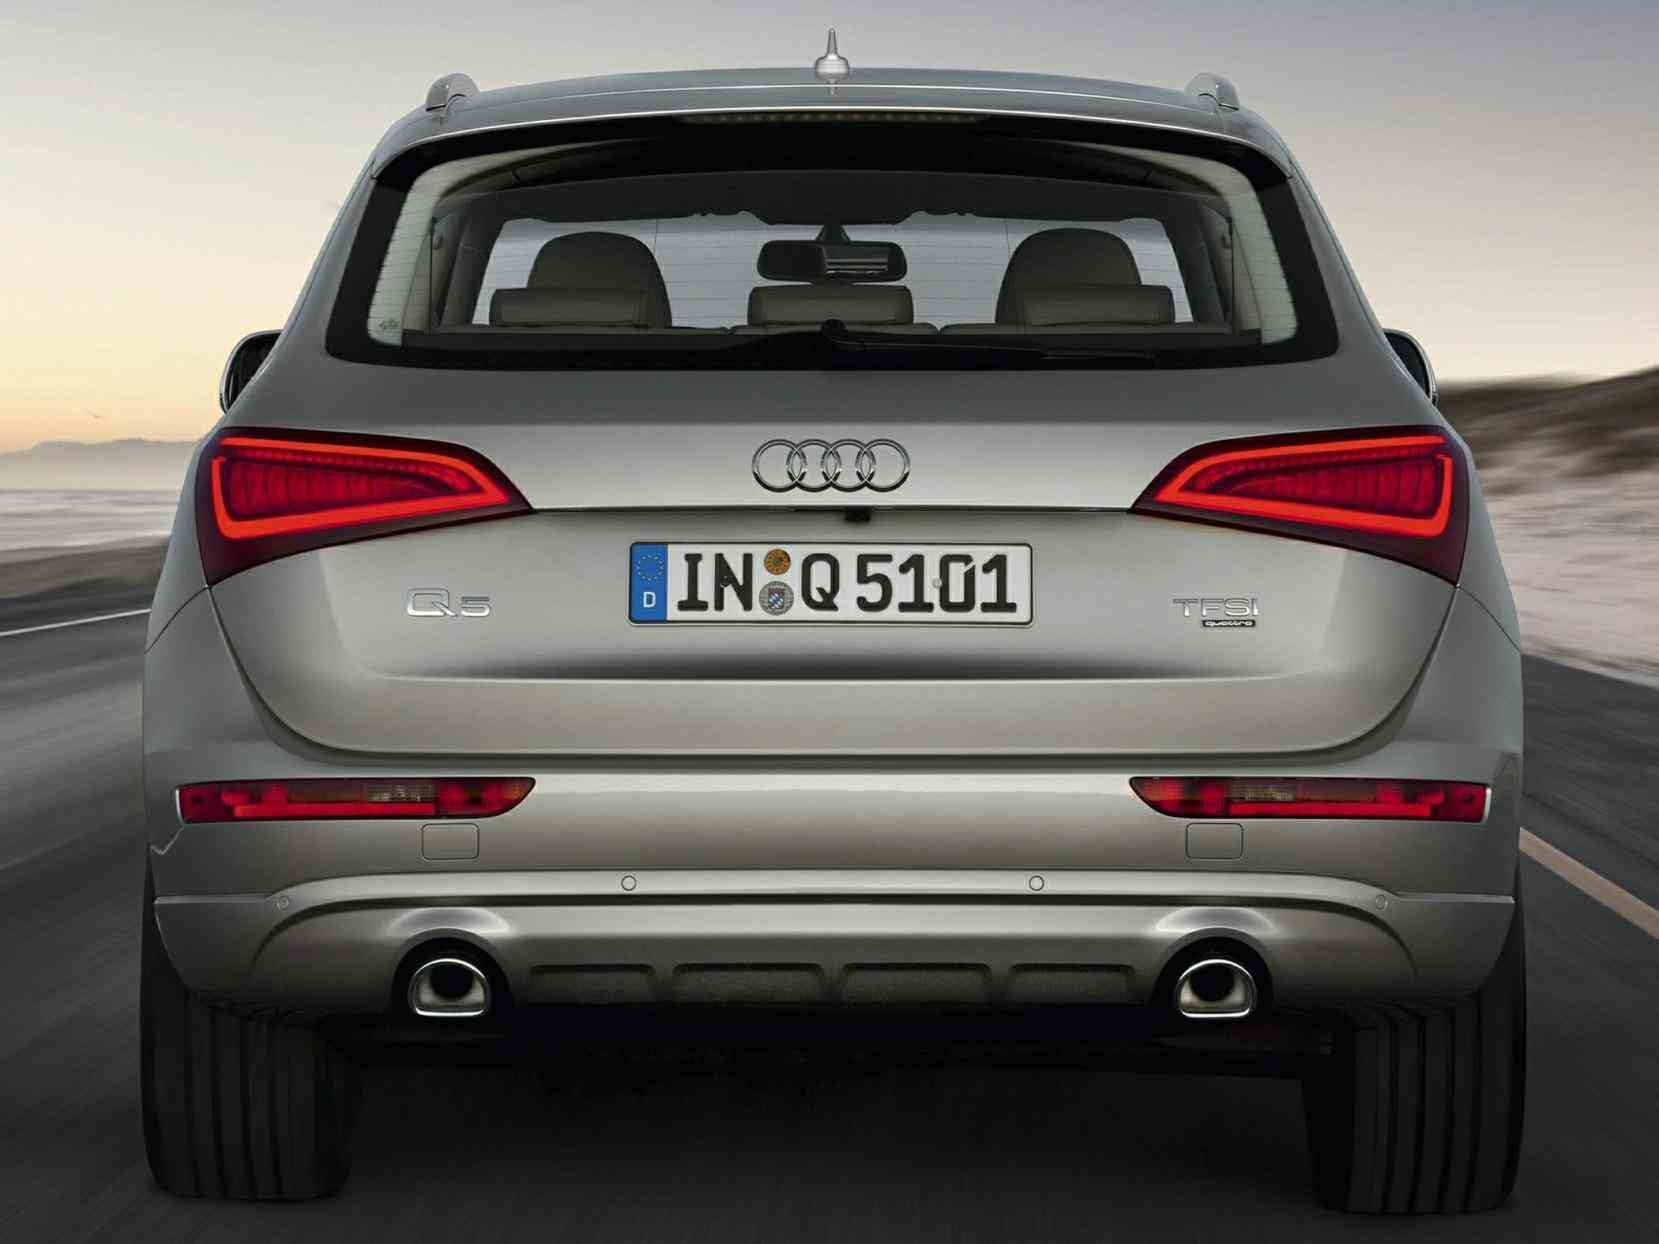 audi q5 invoice price 2015 audi q5 2015 all the best 1659 X 1244